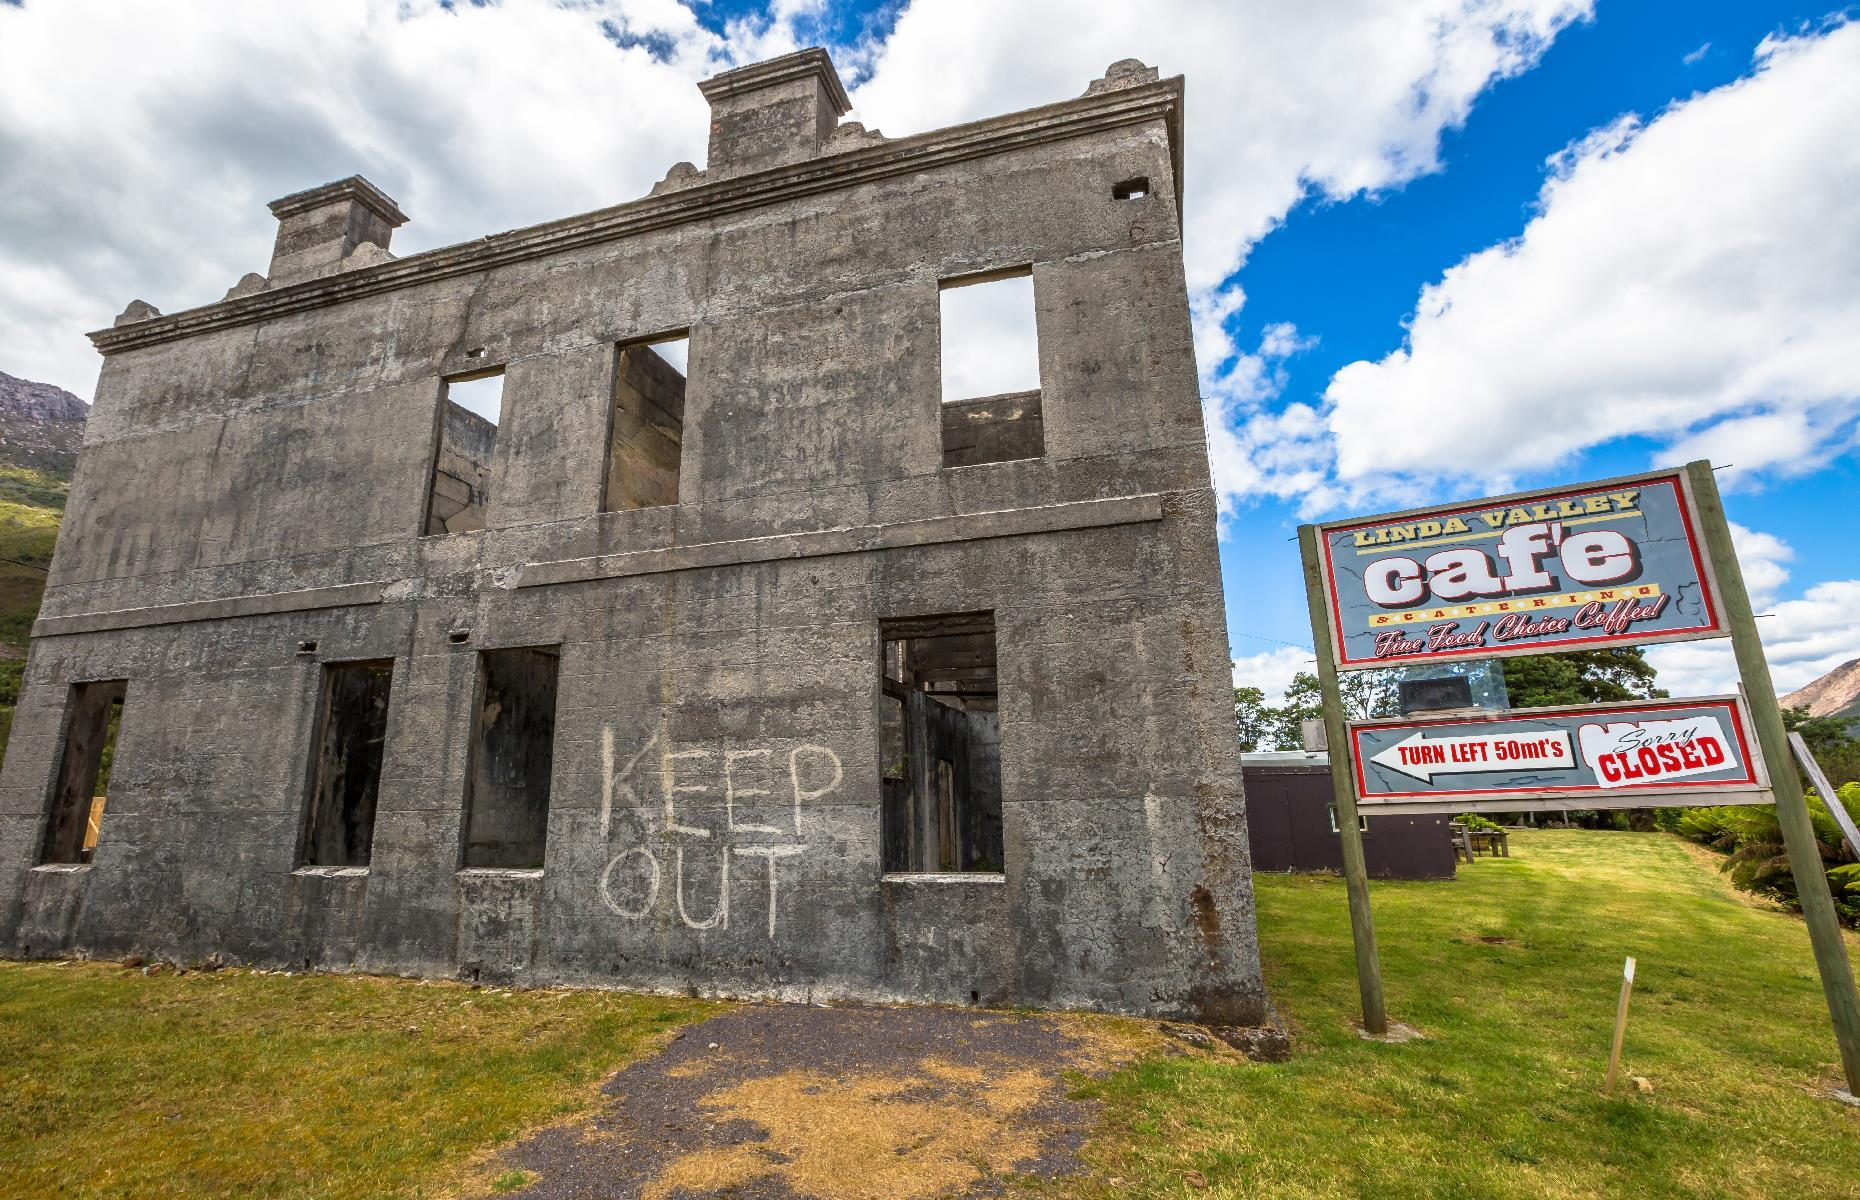 Slide 49 of 70: The hollow shell of the once-thrumming Royal Hotel is all that remains of Linda, a ghost town in western Tasmania. The abandoned mining town had thrived in the late 19th century, but when the mines closed, the settlement fell into decline.